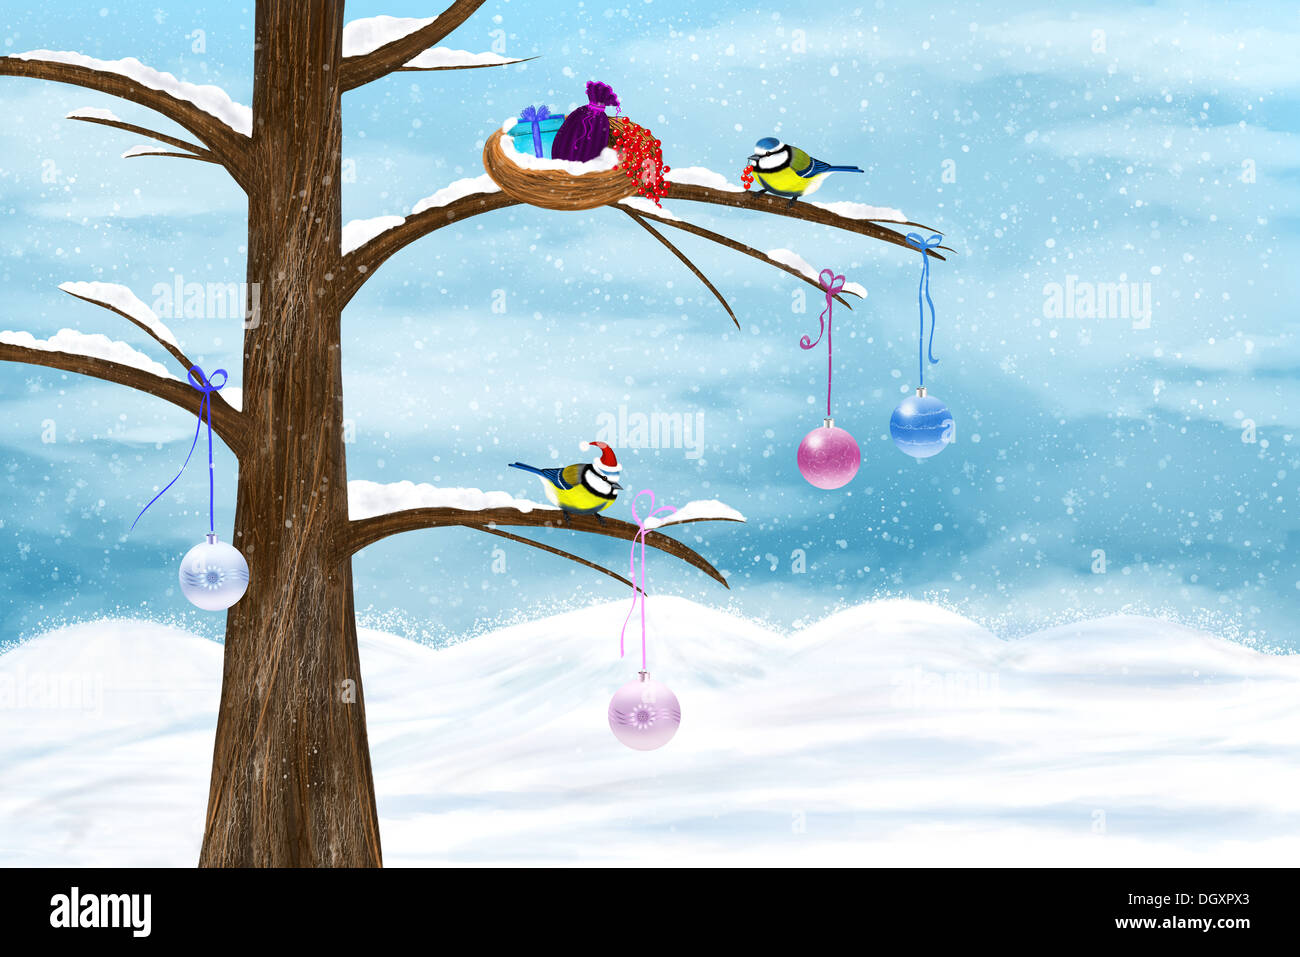 Chickadees celebrate Christmas on the tree. Festive winter illustration. - Stock Image